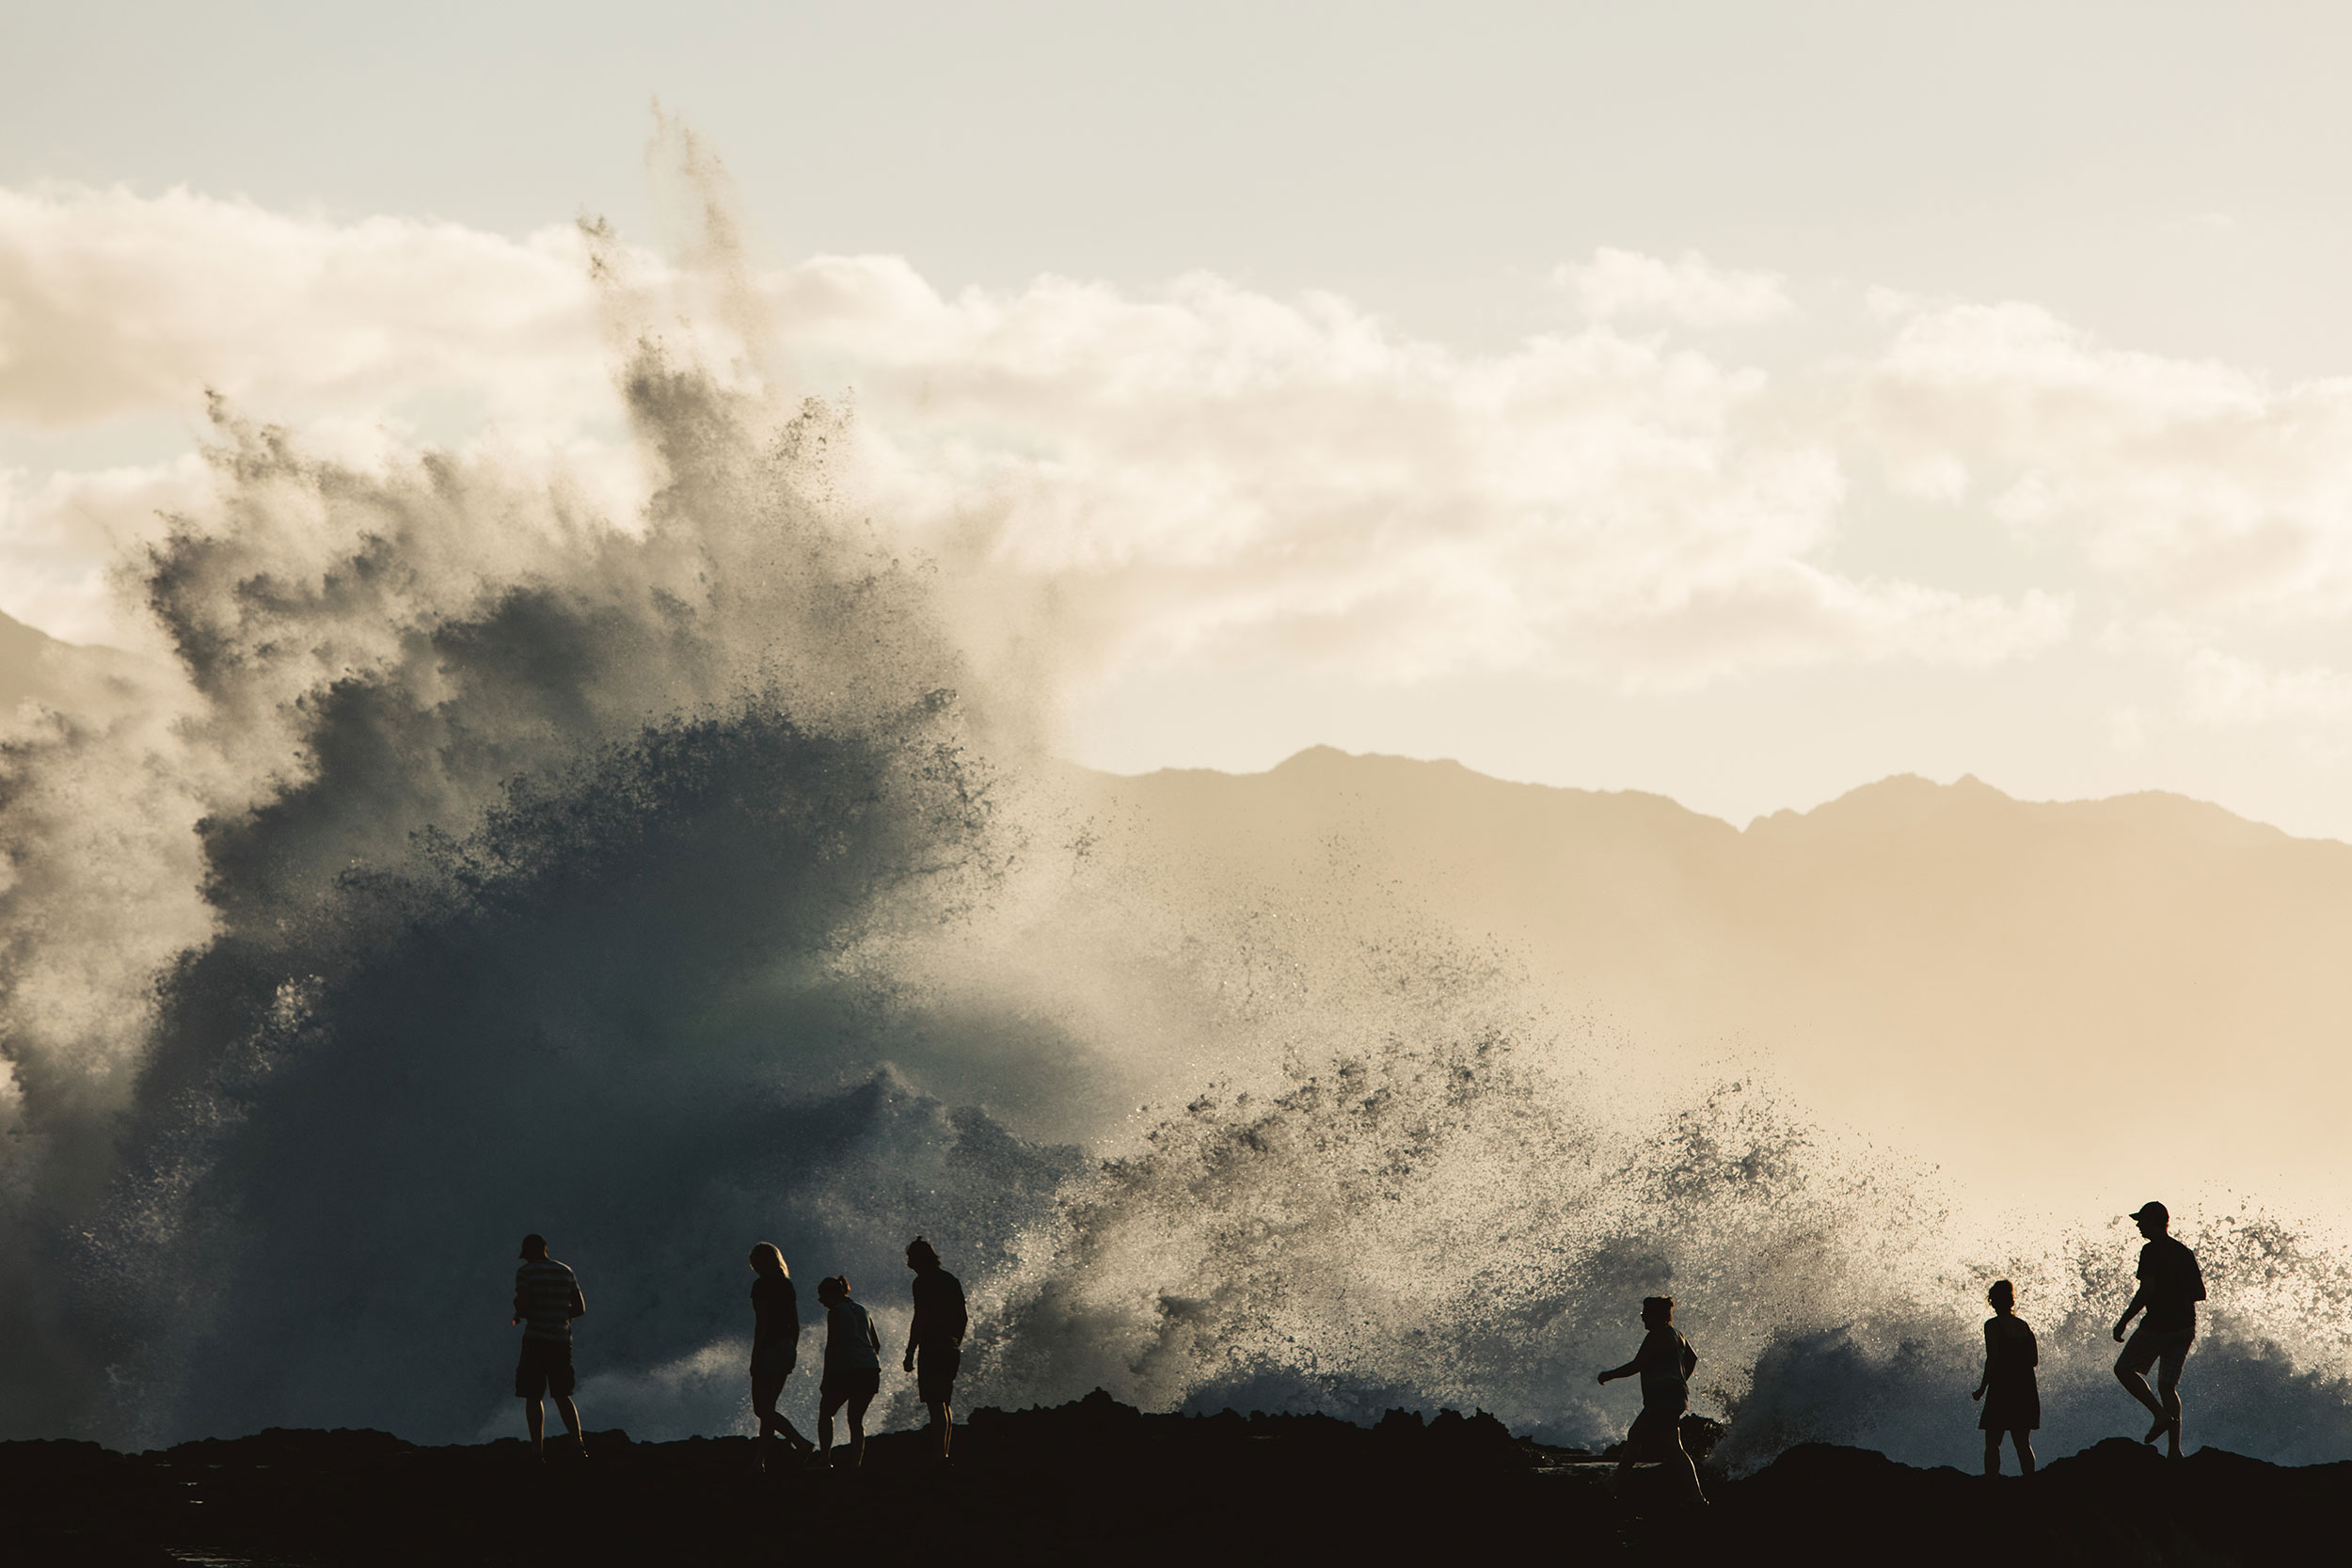 Huge breaking wave Oahu